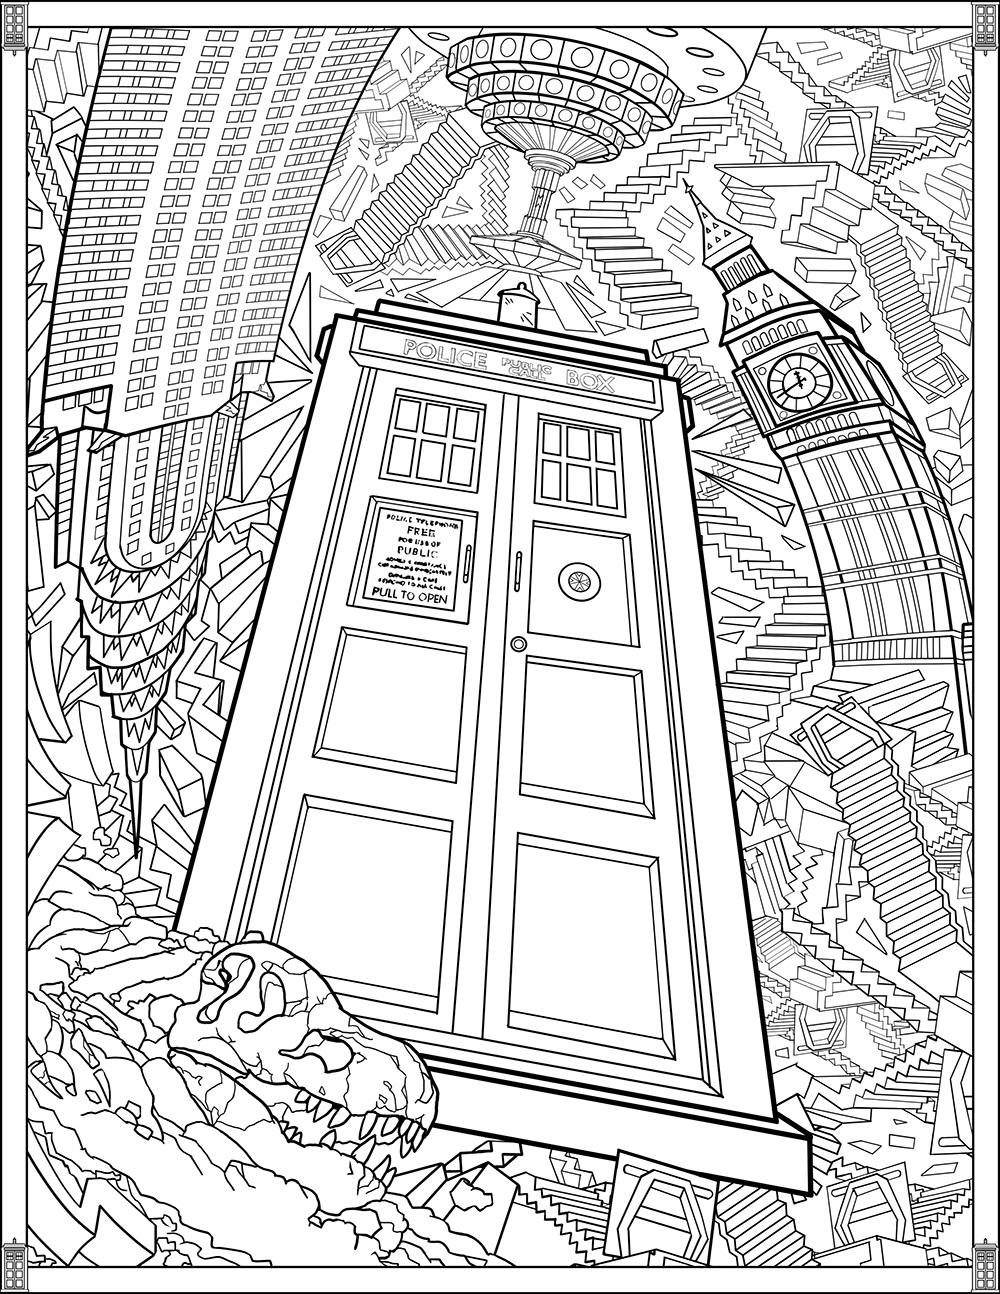 tardis coloring page tardis colouring coloring page doctor who by lyssagal on deviantart tardis page coloring